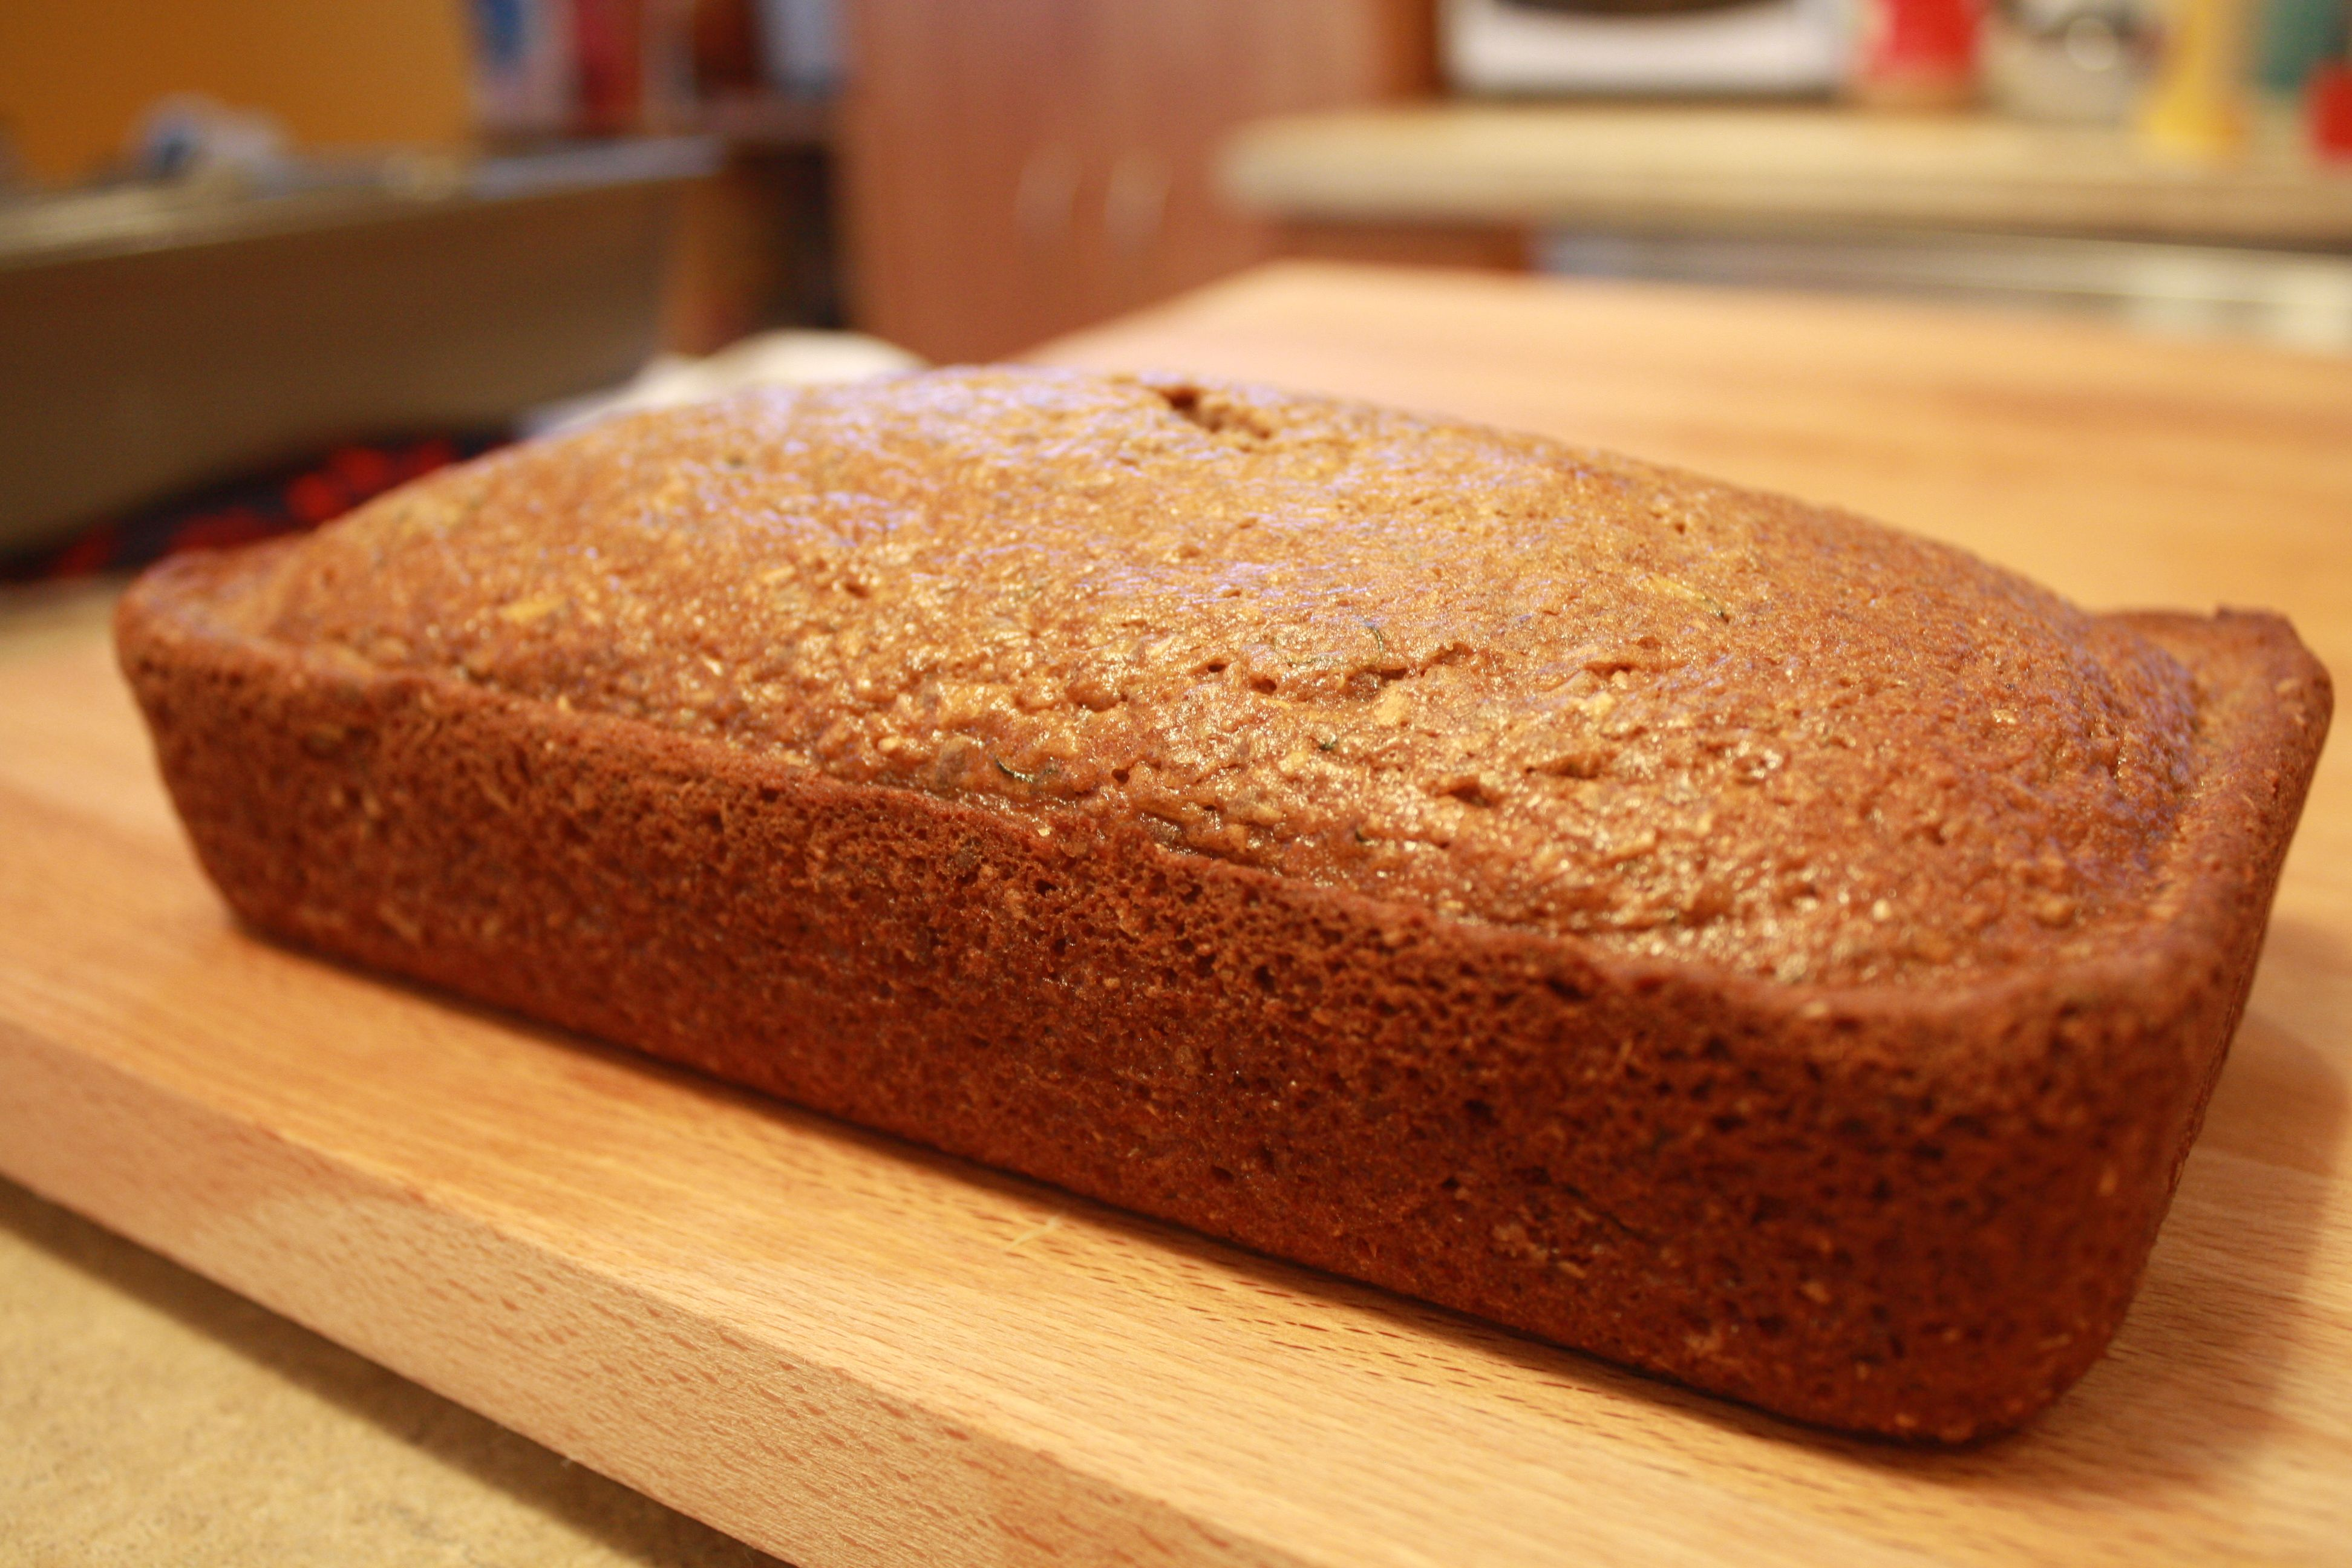 Easy recipe on how to make zucchini bread in a KitchenAid mixer.